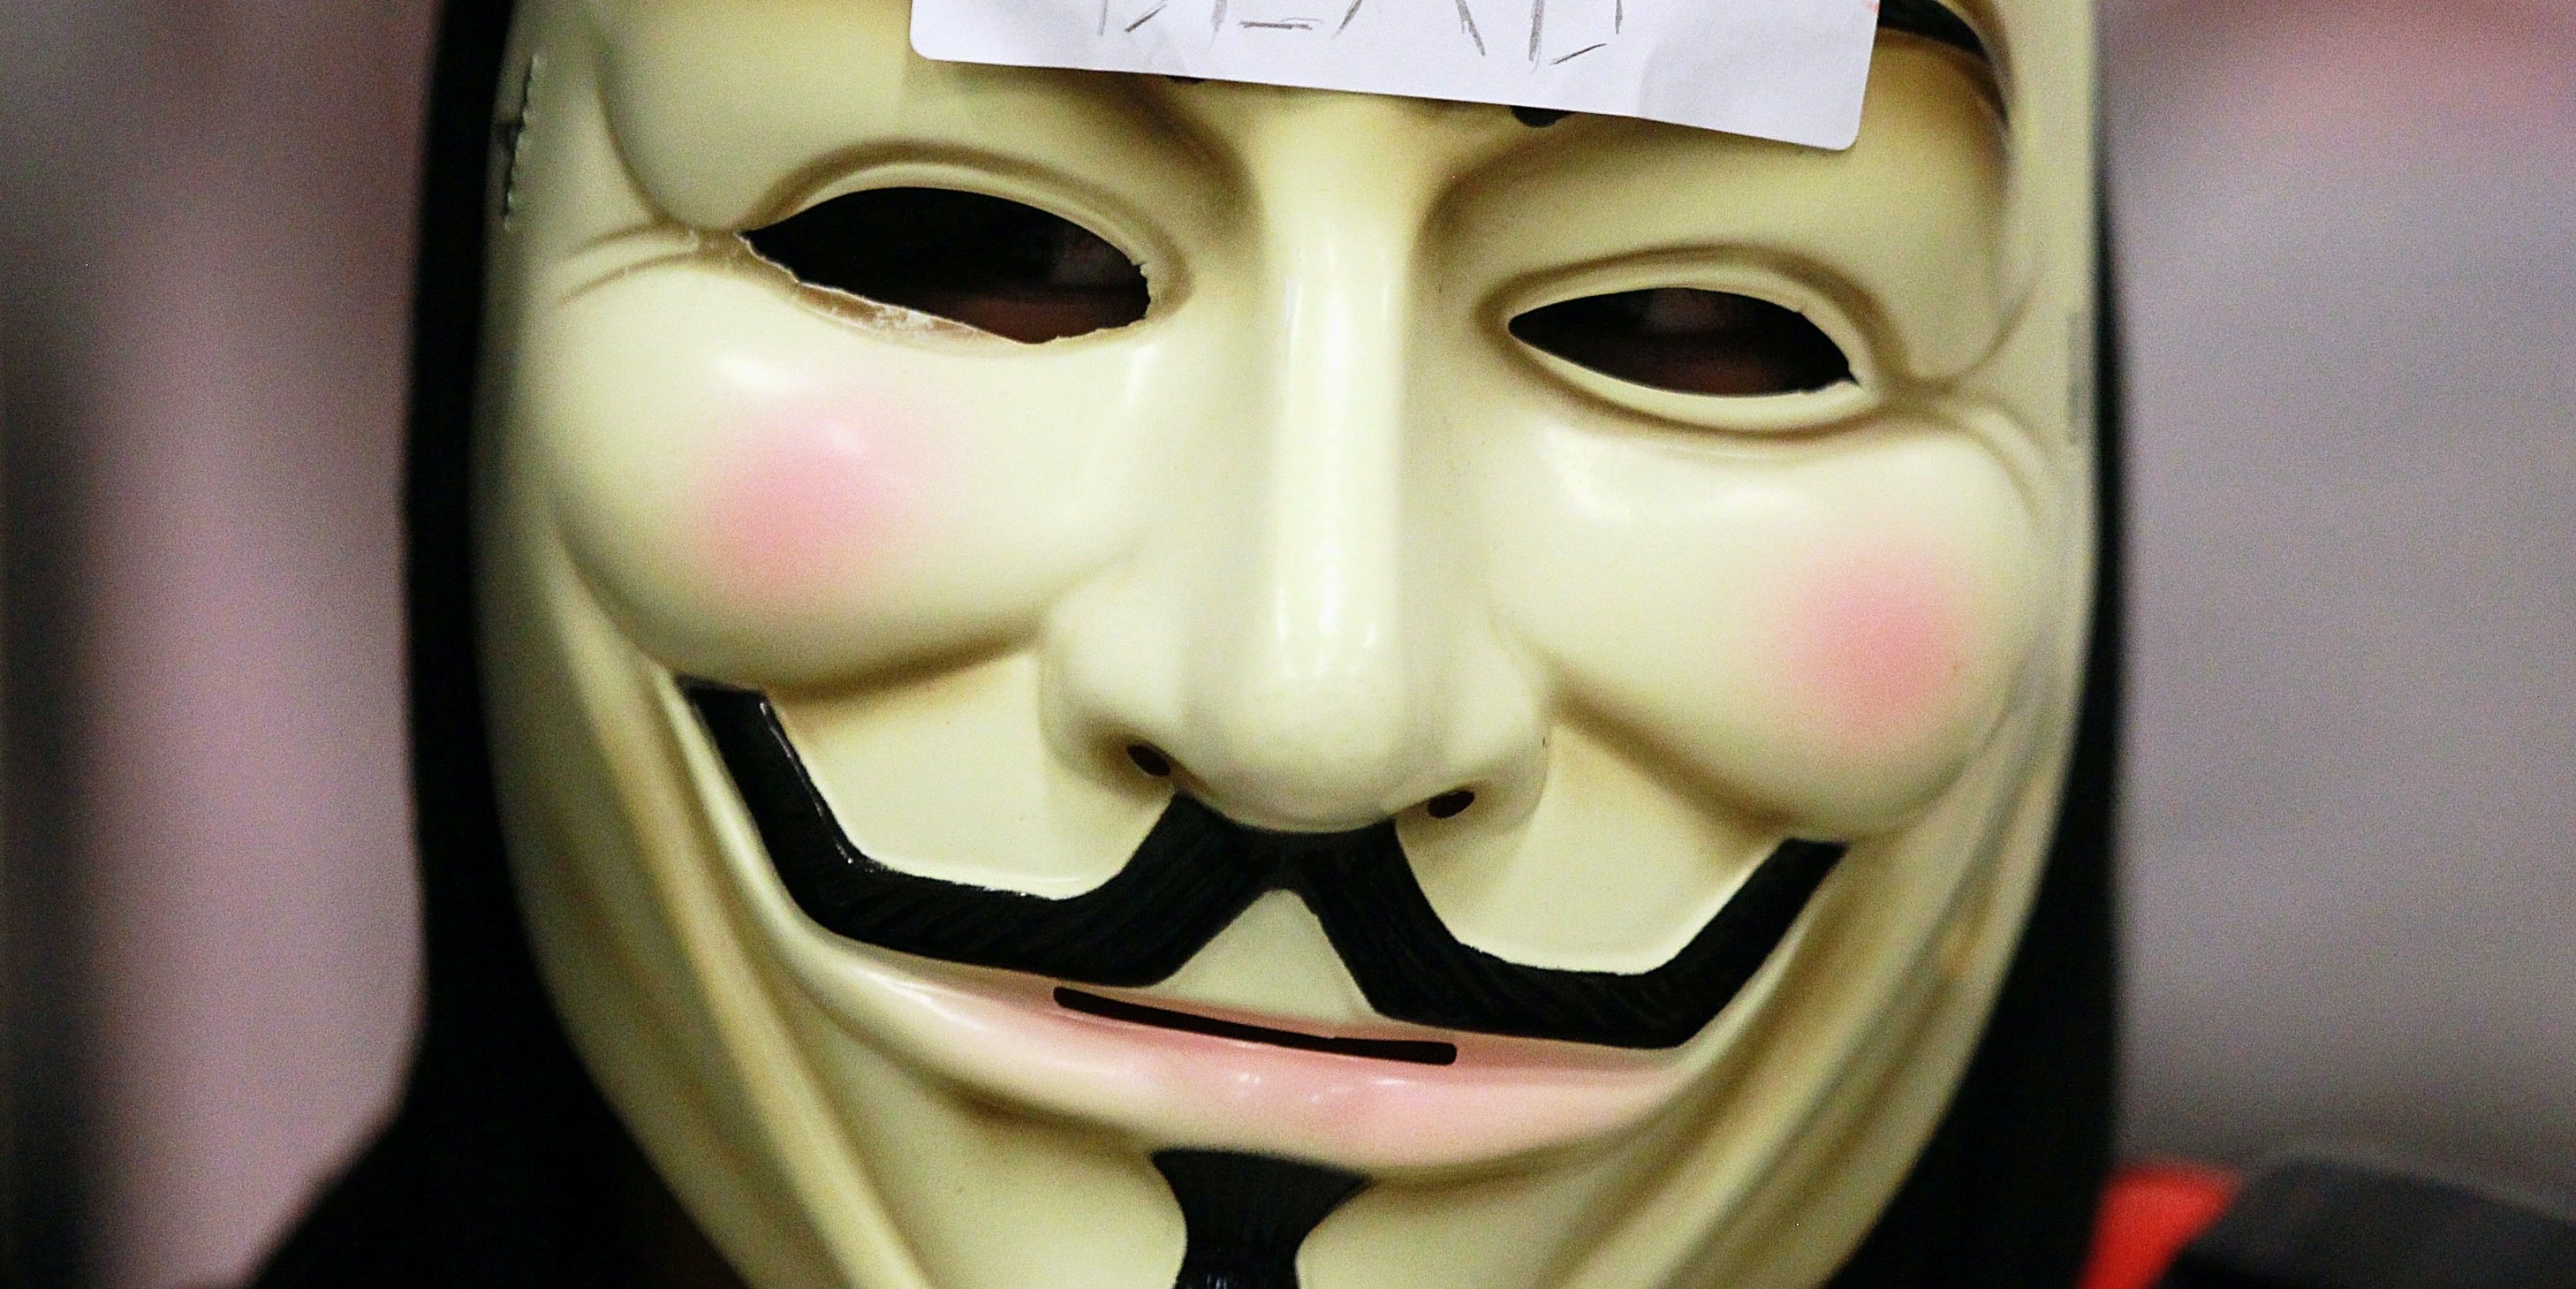 Anonymous says it foiled an ISIS terror attack in Italy